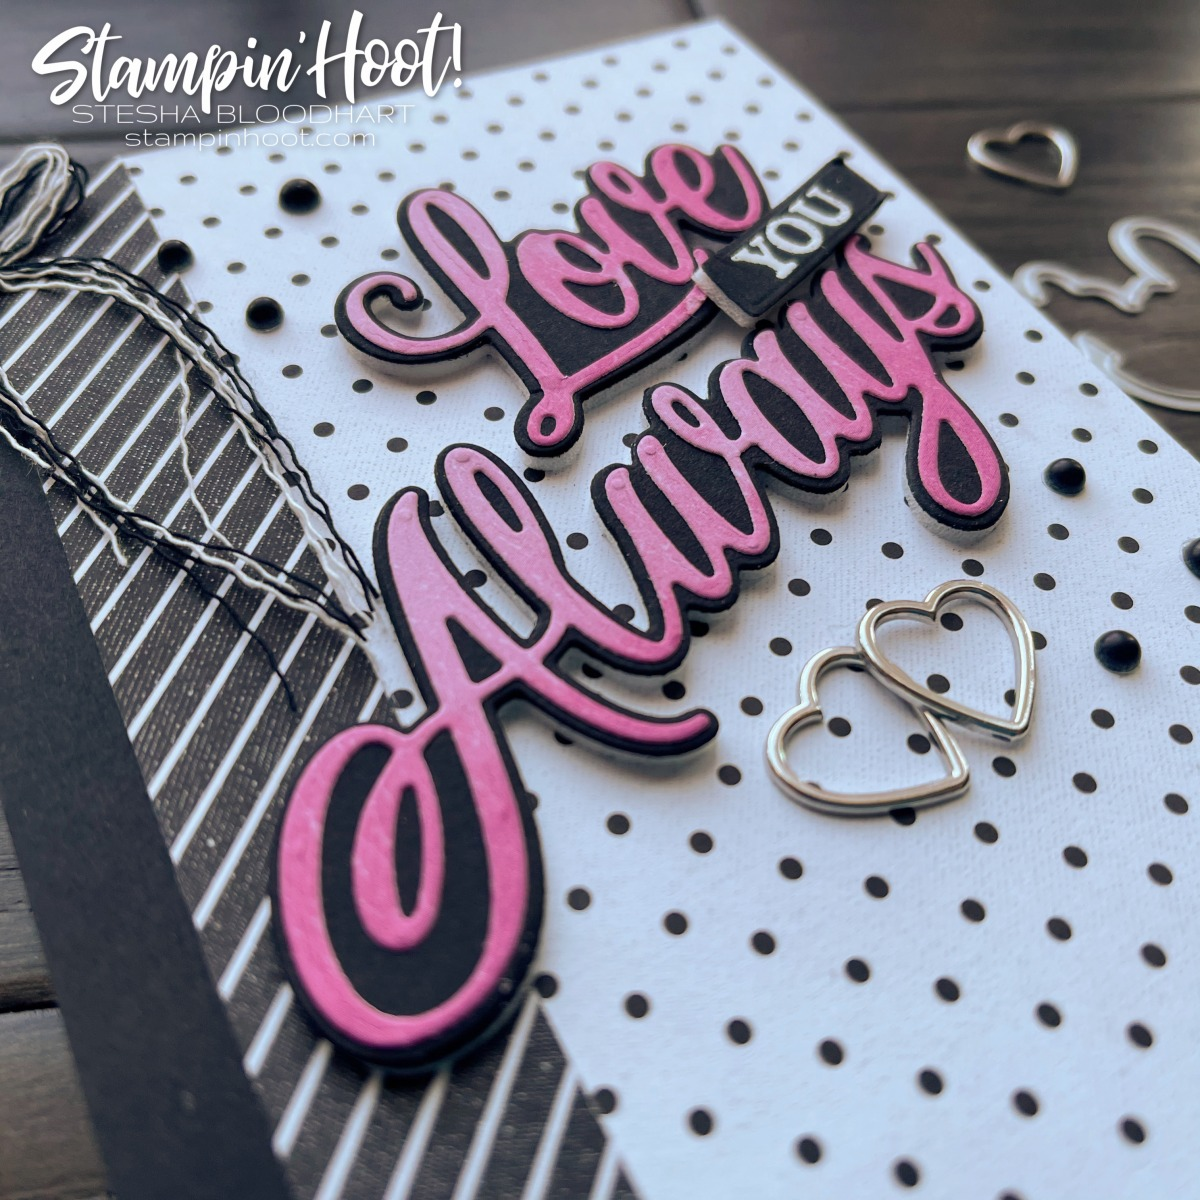 Always & Forever Bundle from Stampin' Up! Card by Stesha Bloodhart, Stampin' Hoot! #tgifc300